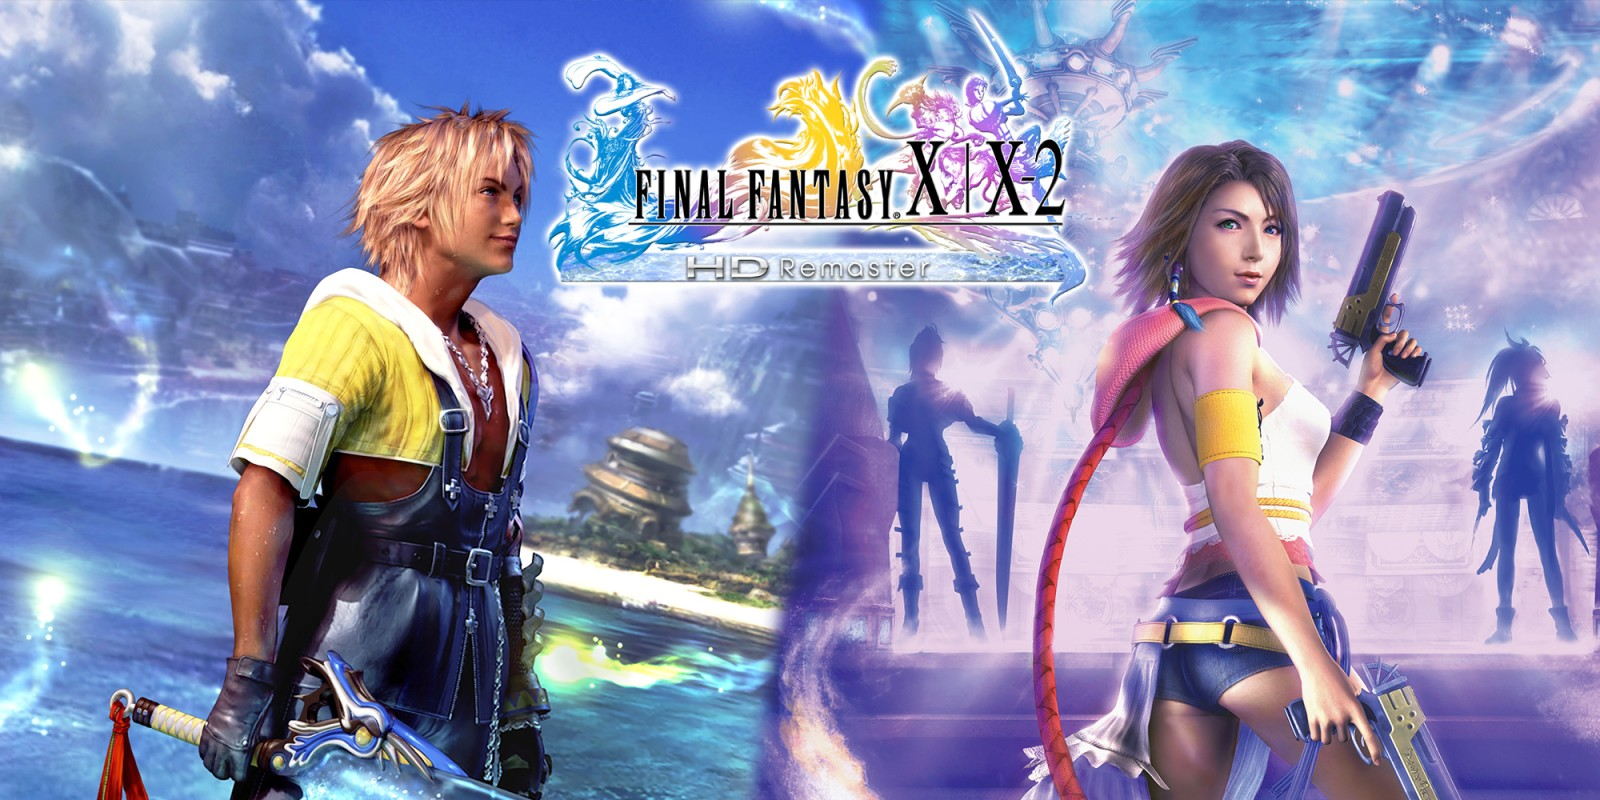 Apparently, the western version of Final Fantasy X-2 requires the